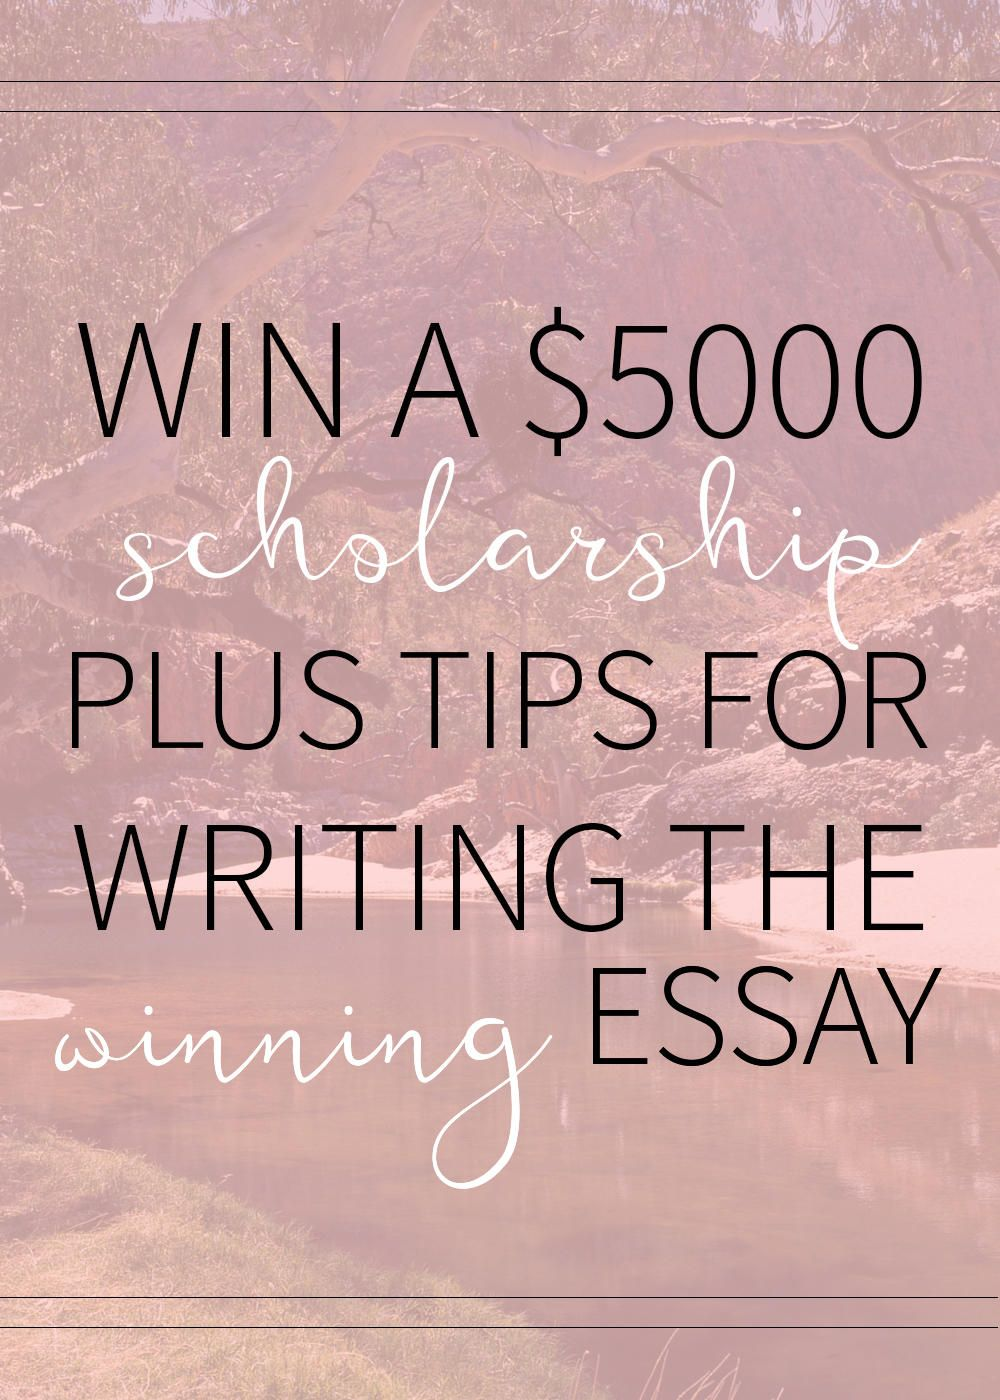 College scholarships essay help tips